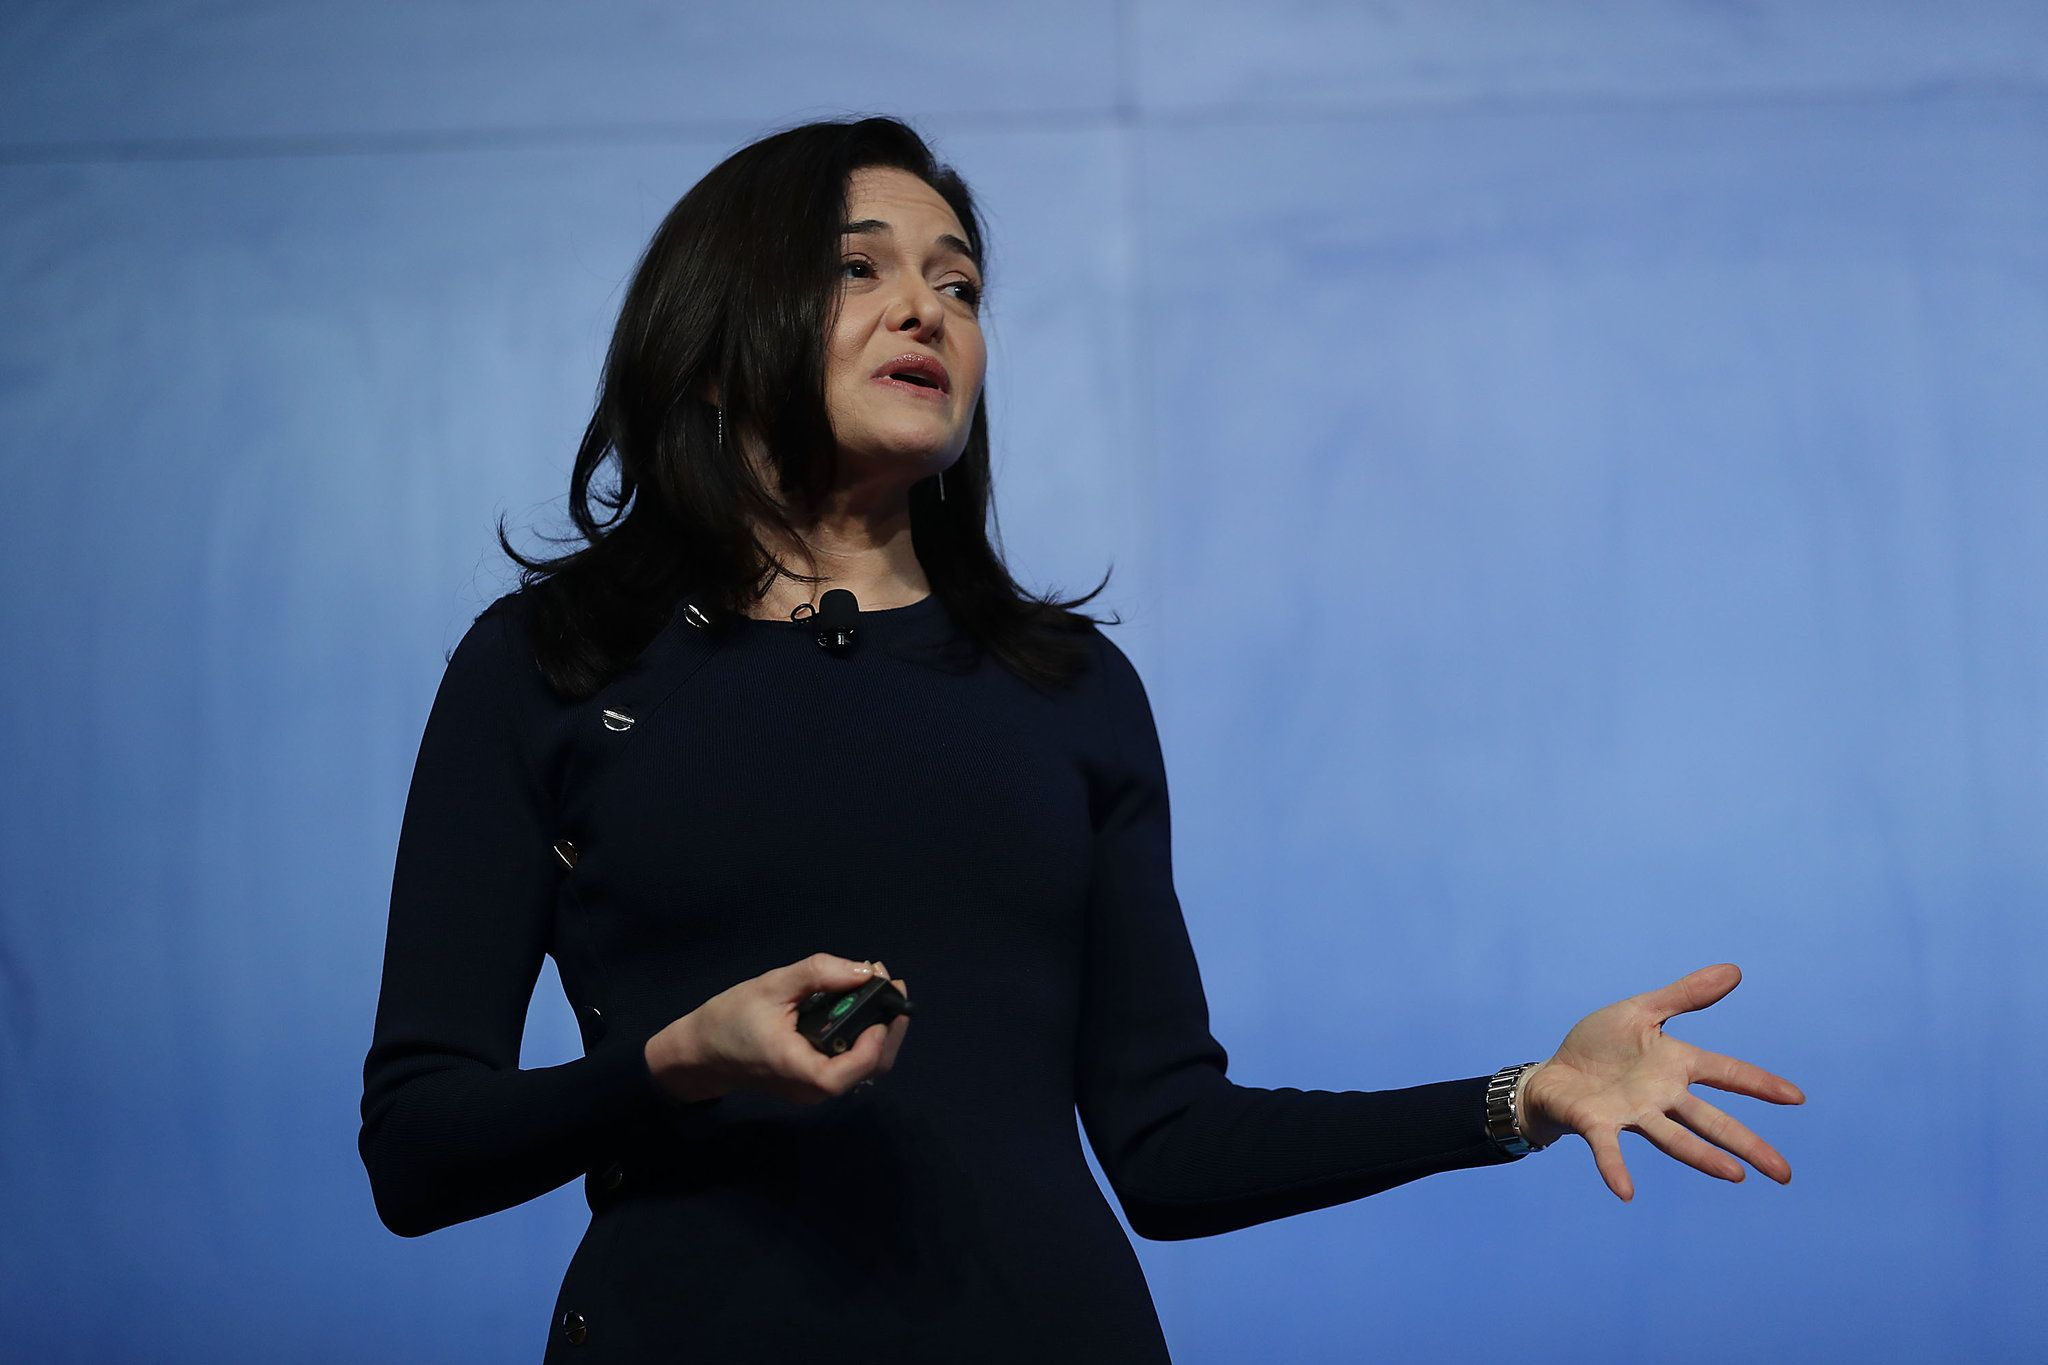 Facebook Halts Ad Targeting Cited in Bias Complaints The